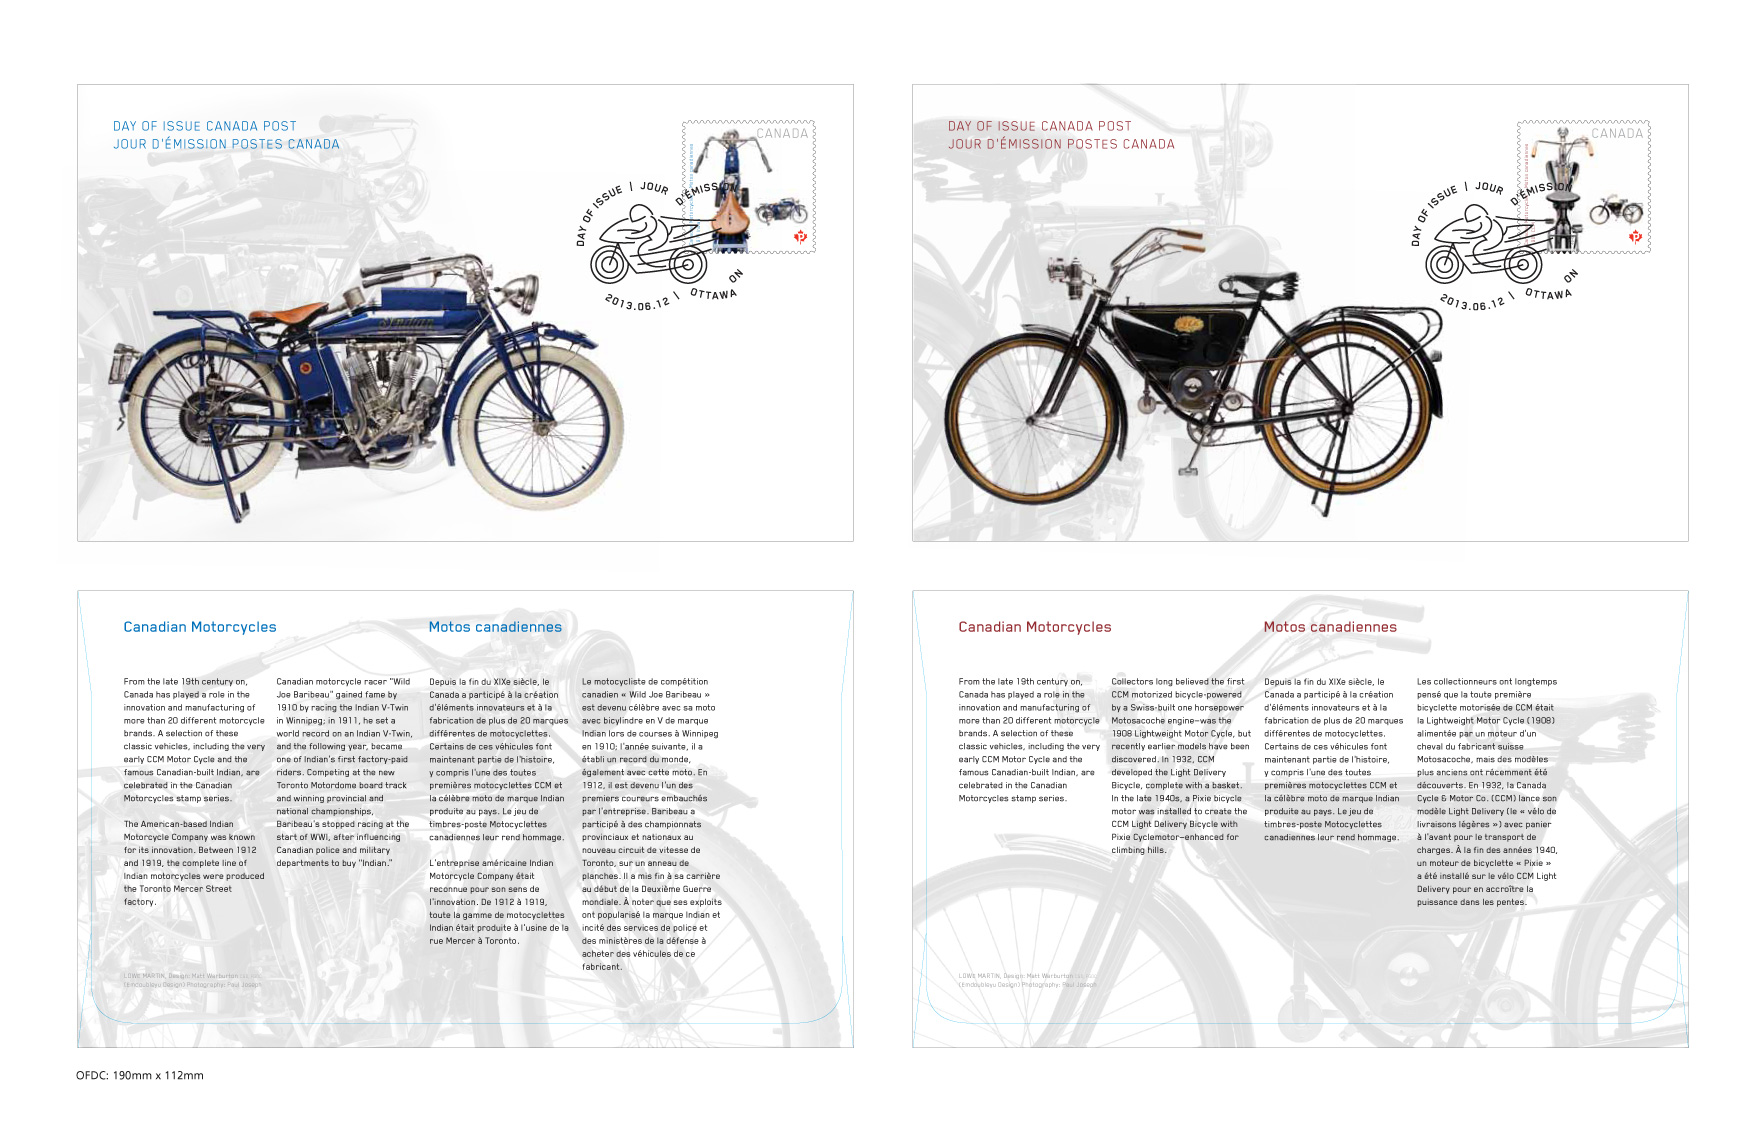 Motorcycles-2013-OFDC-2-DUP.jpg